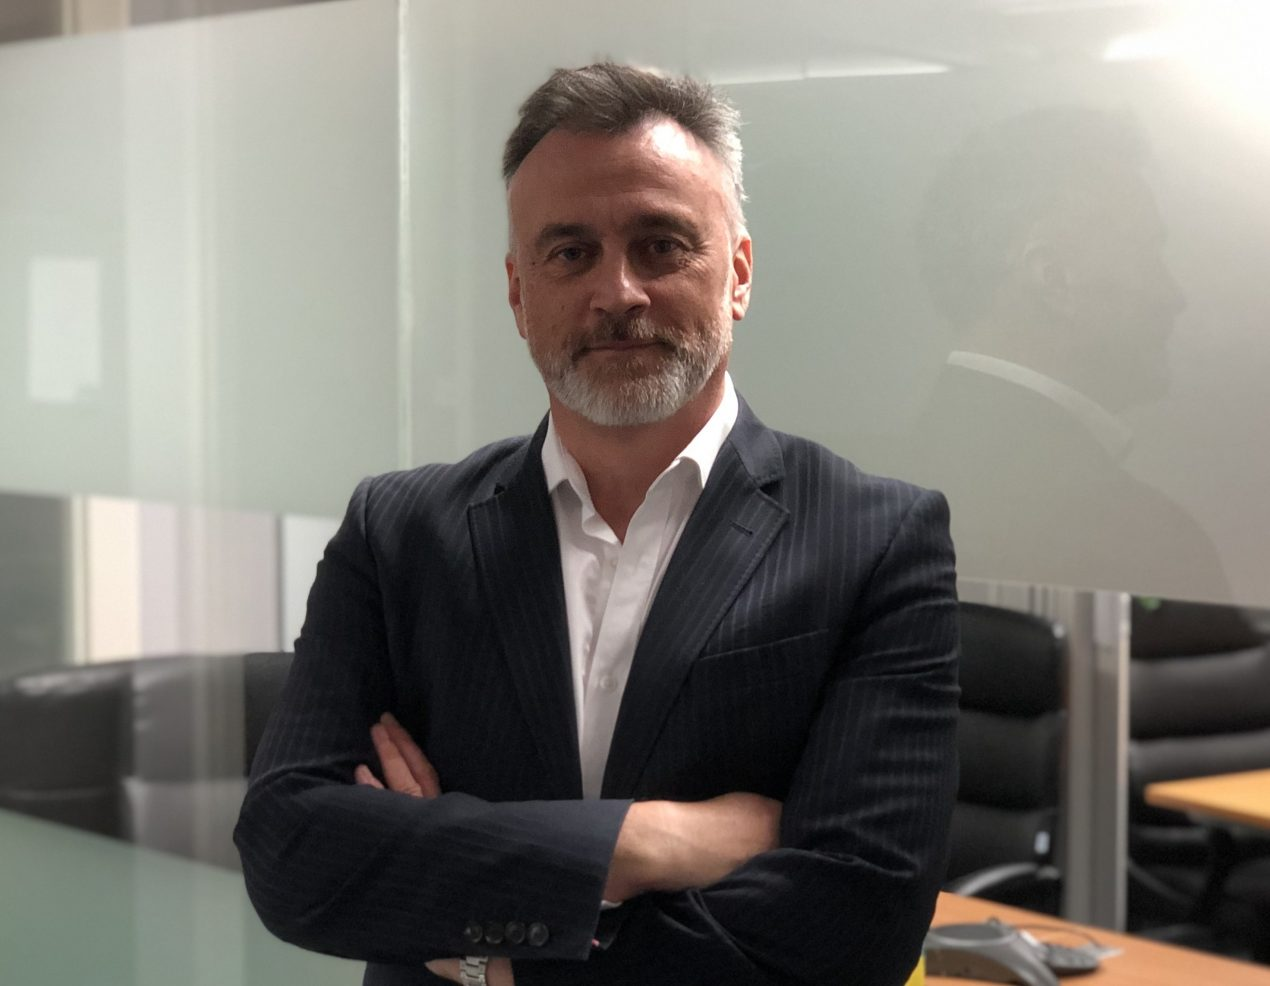 Q&A with Alastair Graham from AgeChecked